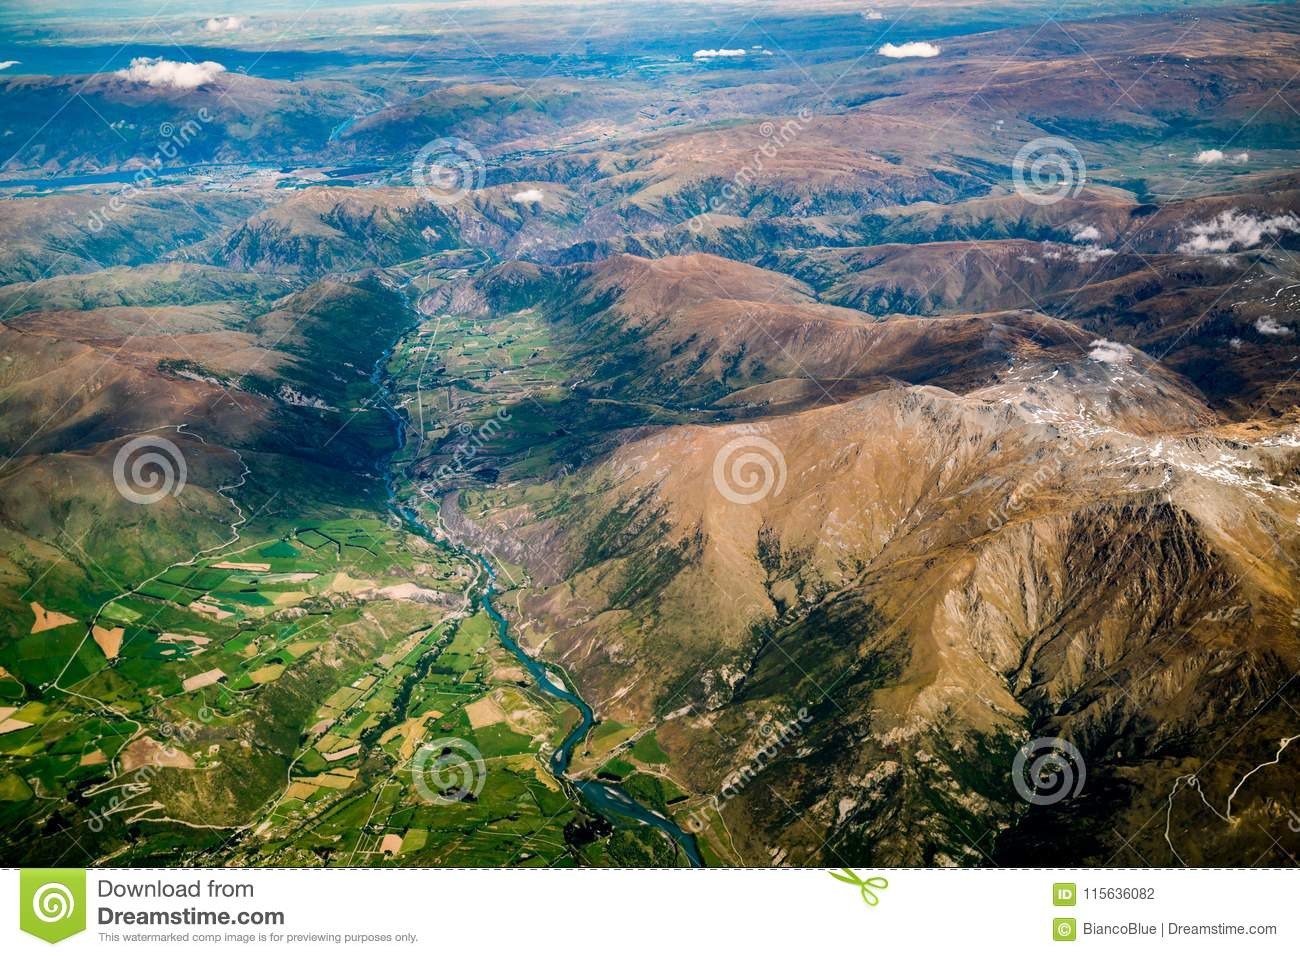 Aerial view of mountain ranges and lake landscape